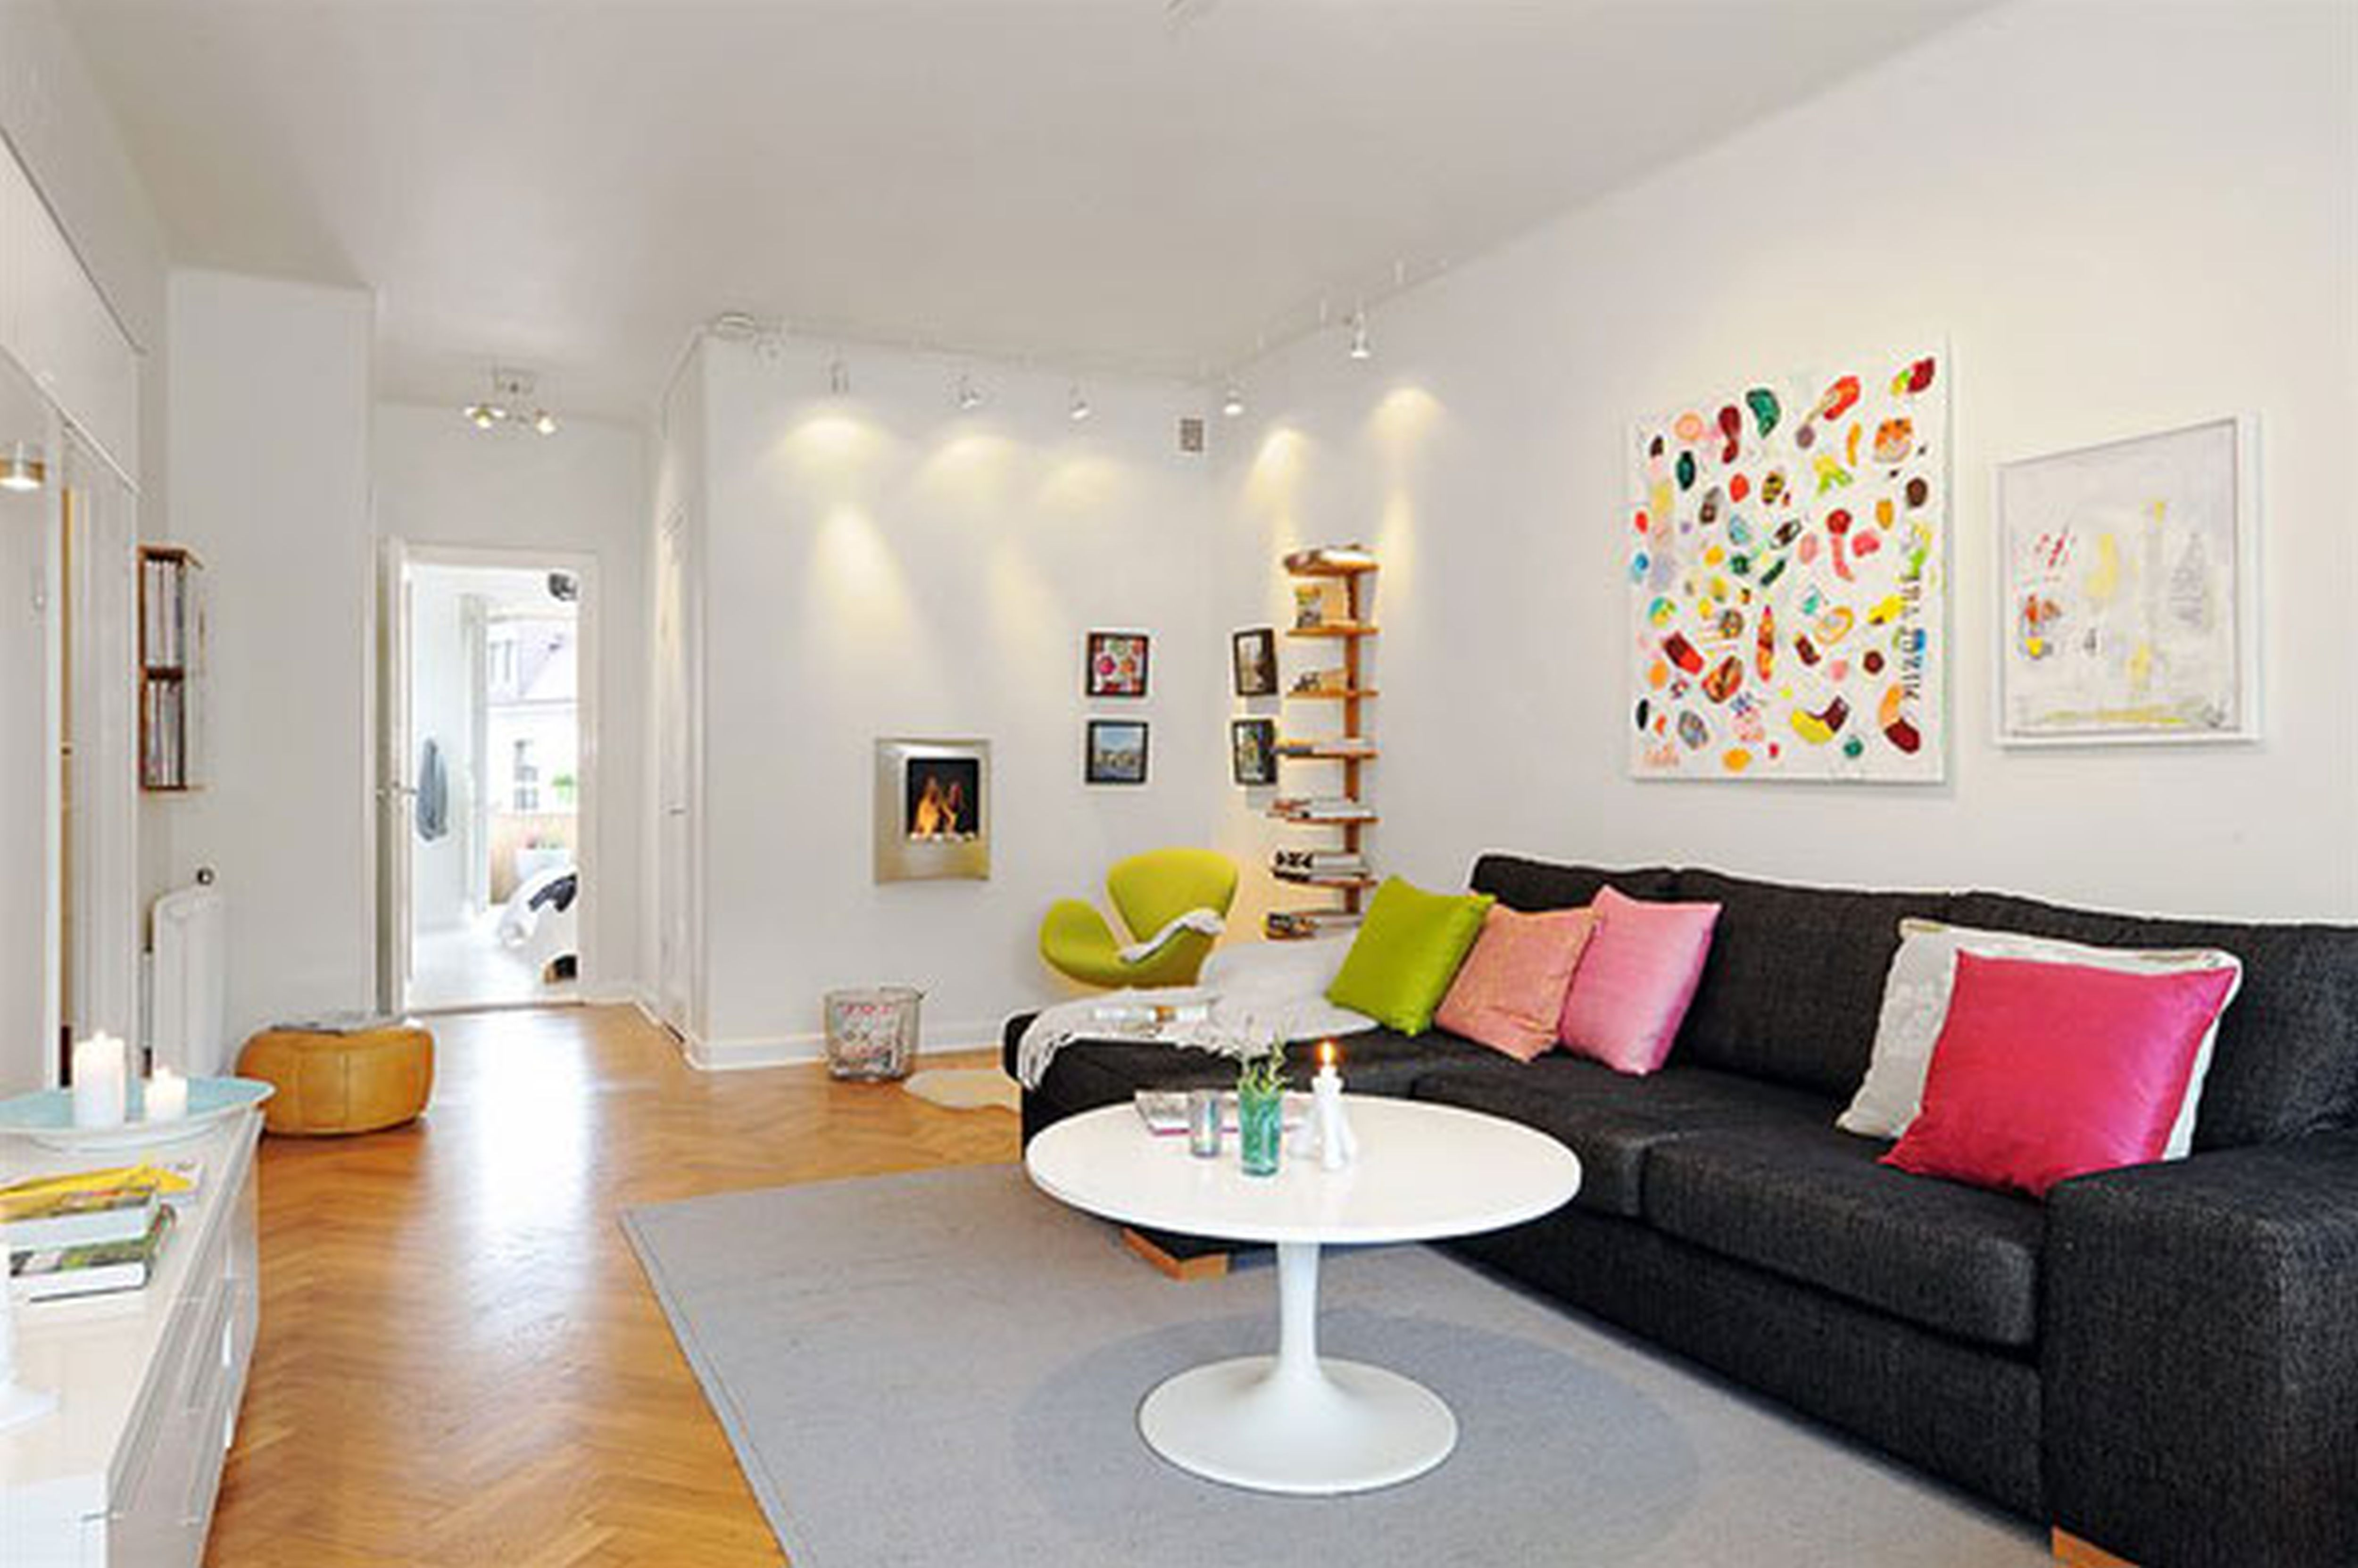 Living Room Bright Color Living Room Ideas black couch white walls google search living room ideas realistic pinterest minimalist interior couches and de